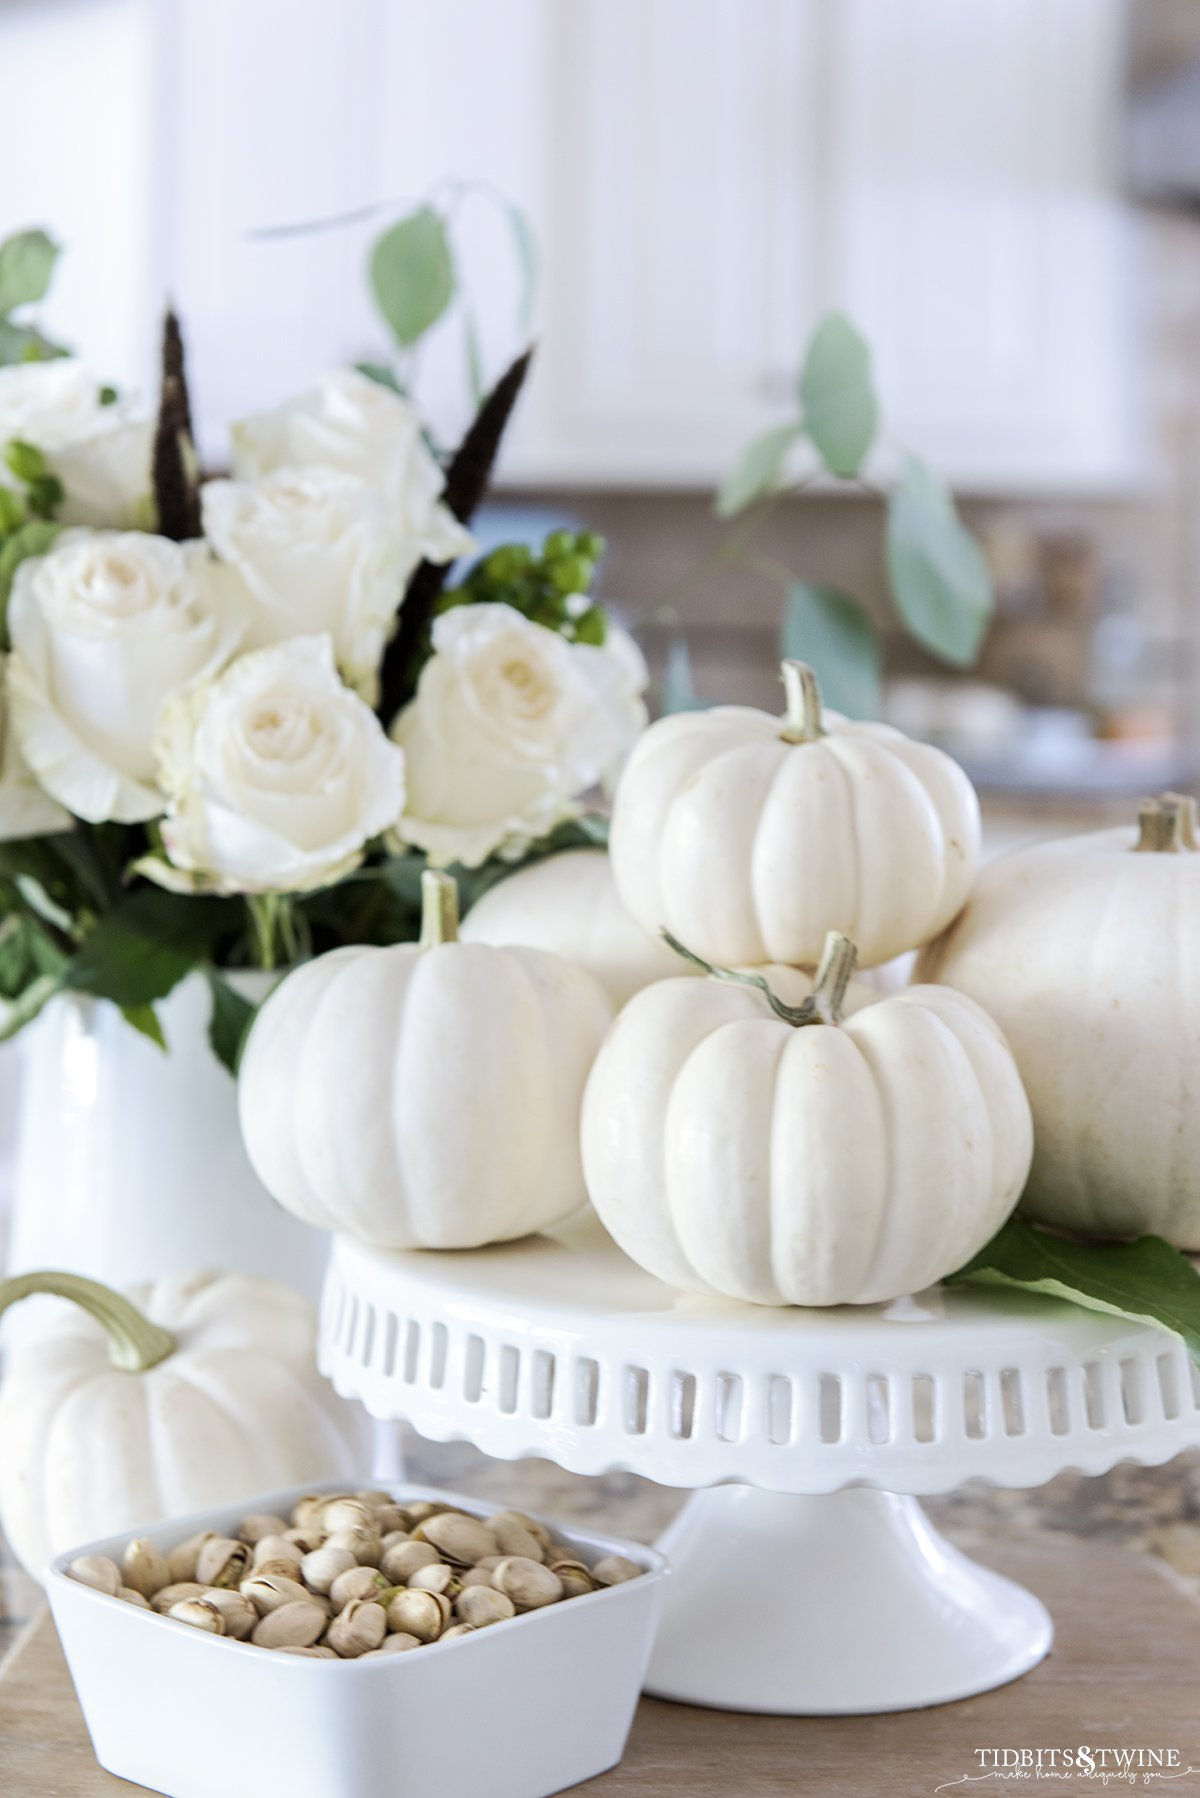 Small white pumpkins on a cake stand with a pitcher of white roses behind and a bowl of pistachios below